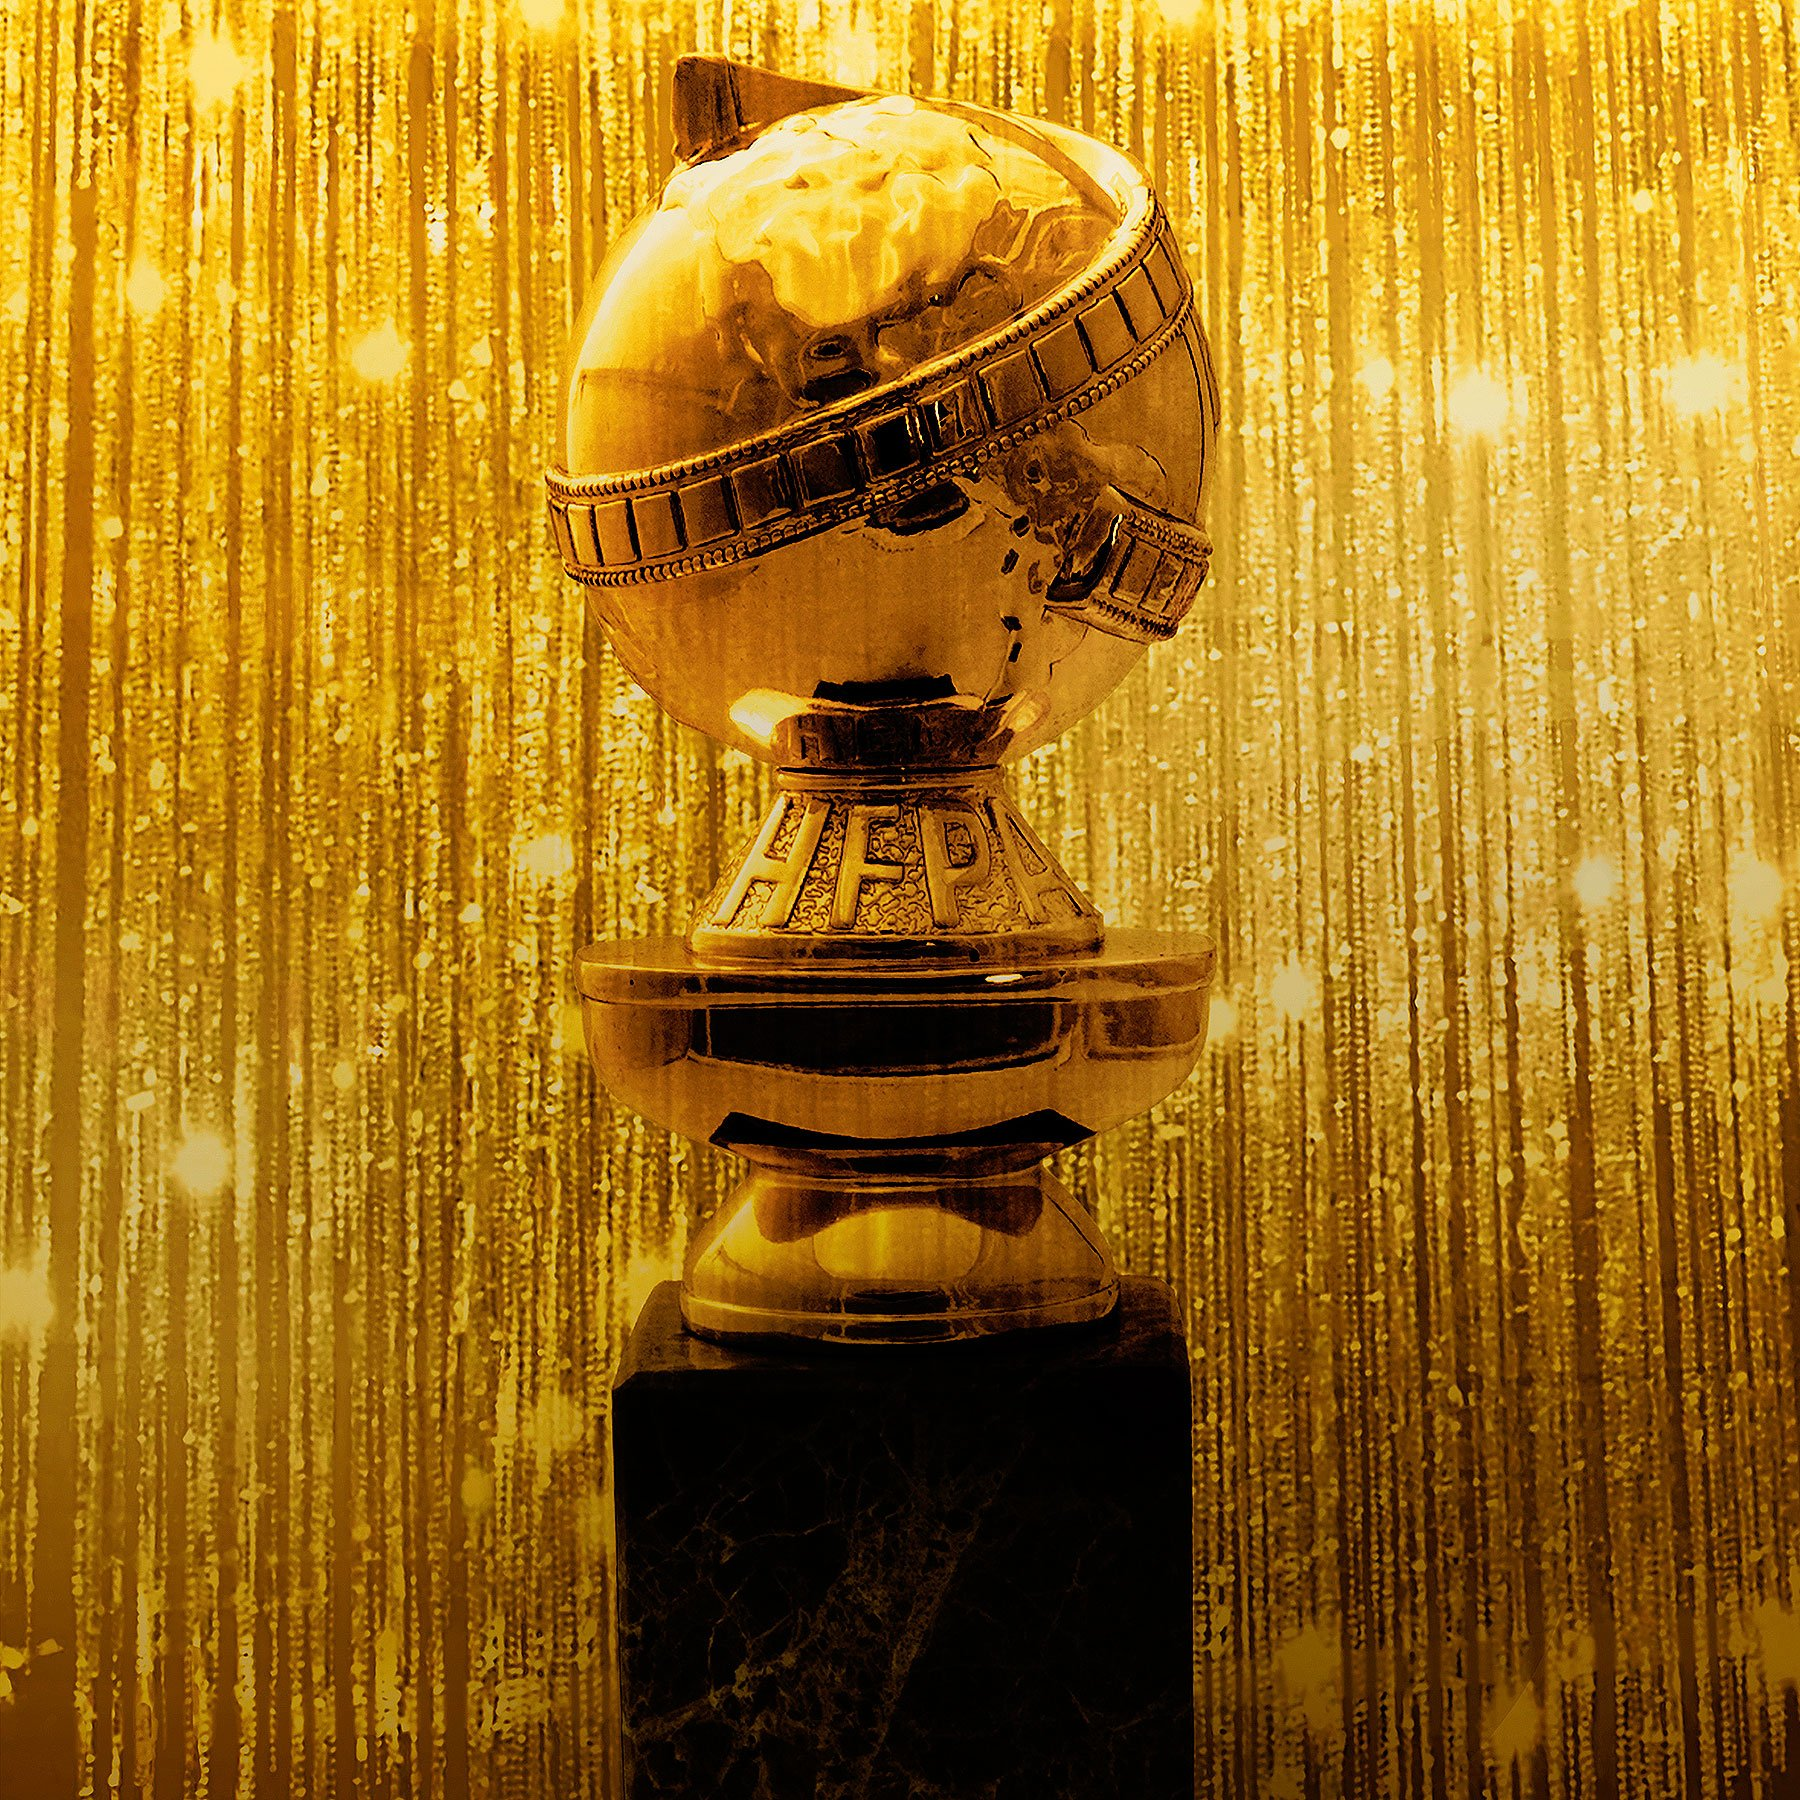 Golden Globes winners 2018: Full list